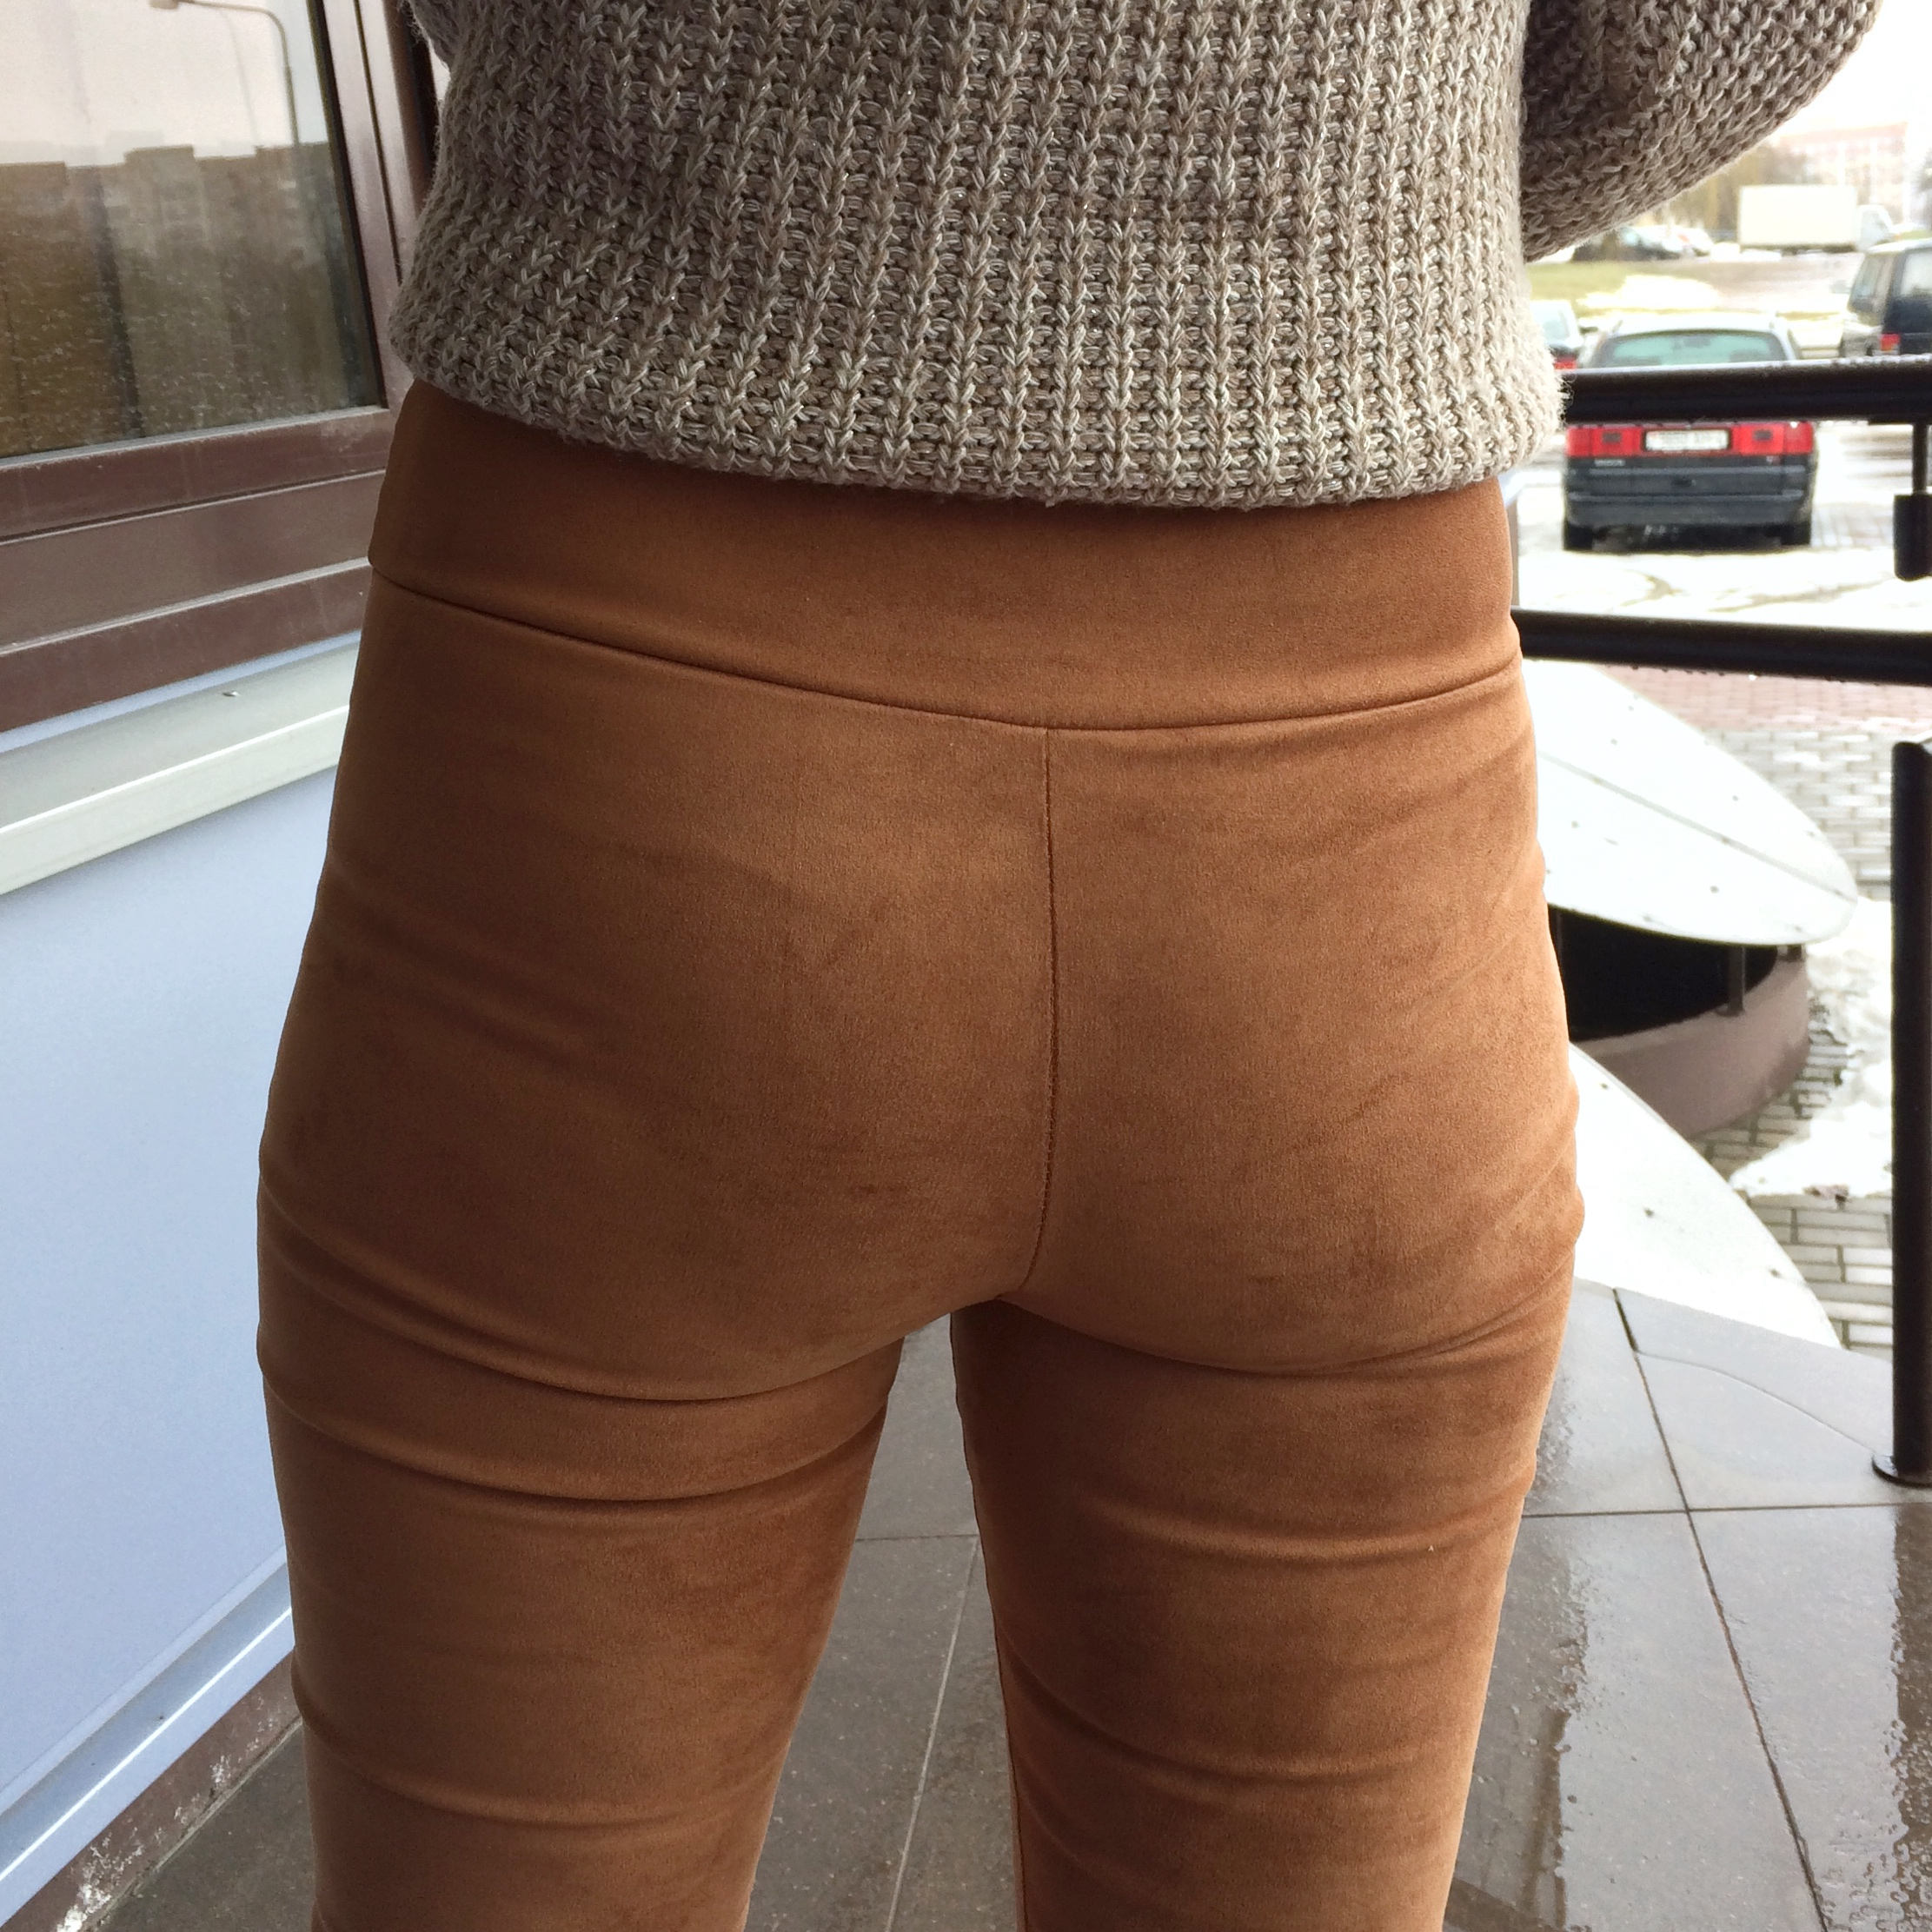 2018 spring autumn suede leather women pants high waist large elastic slim retro leather suede pants for women